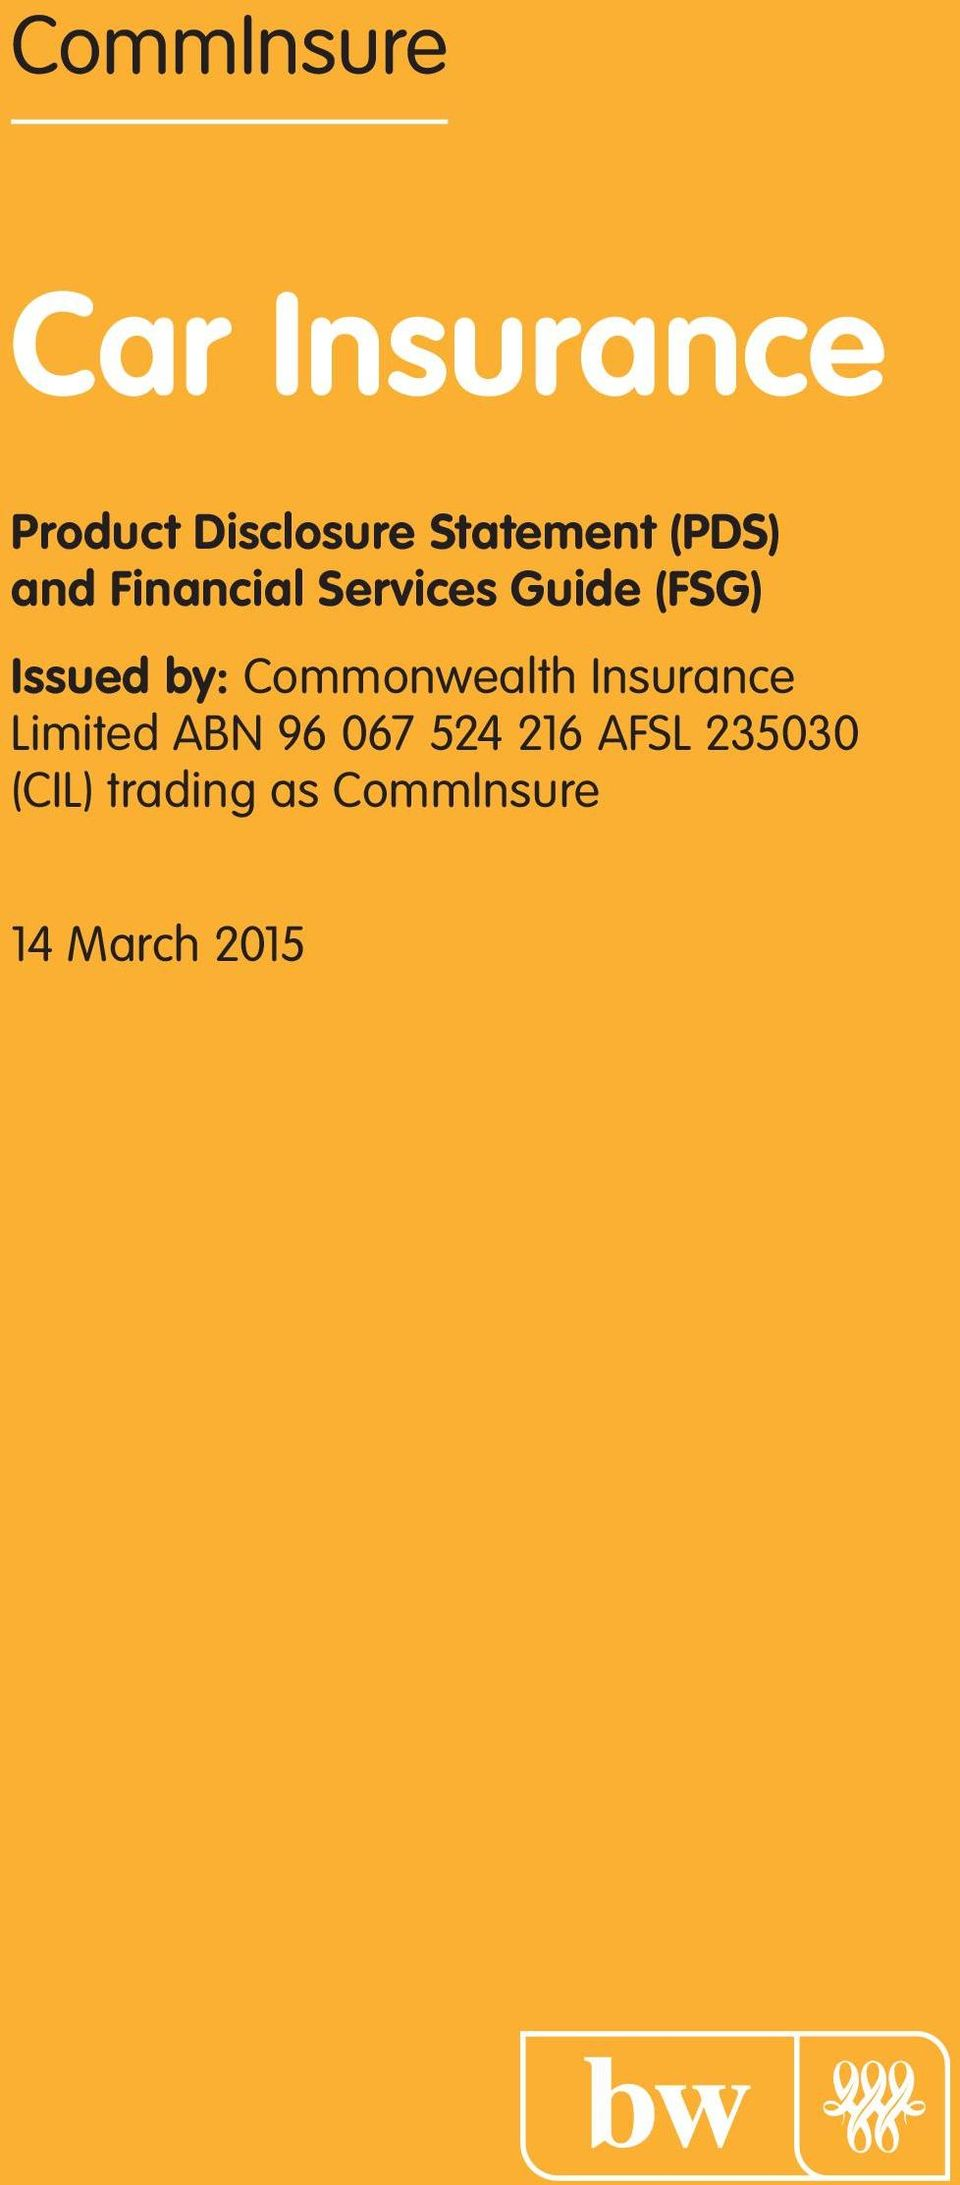 Issued by: Commonwealth Insurance Limited ABN 96 067